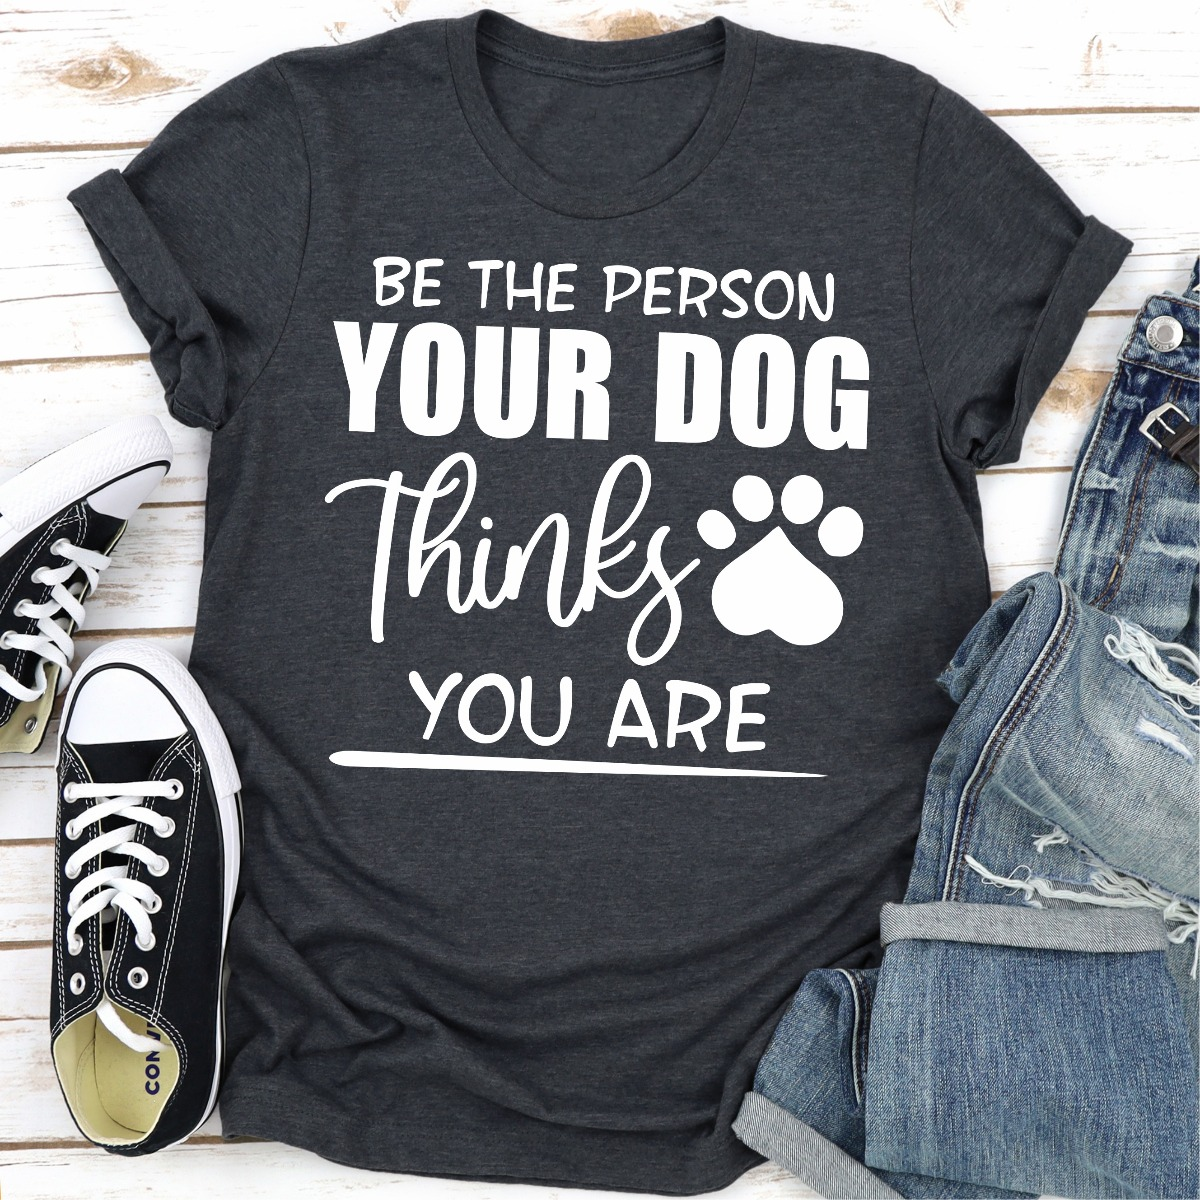 Be The Person Your Dog Thinks You Are (Dark Heather / 2Xl)